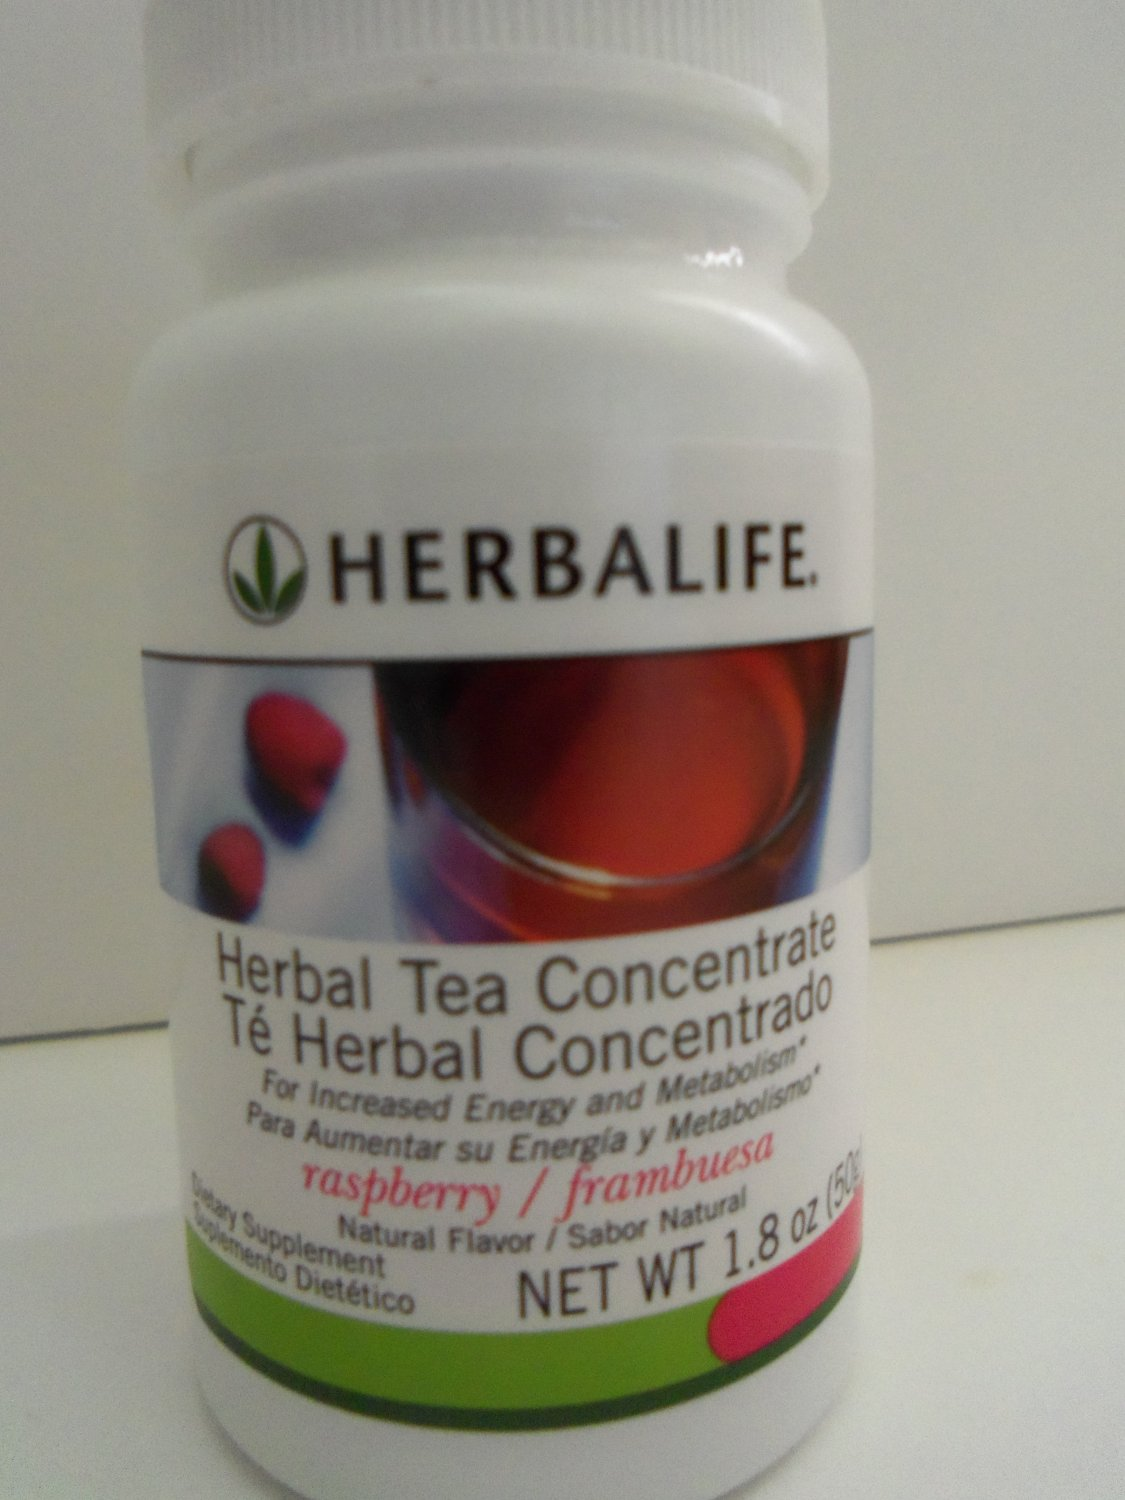 Herbalife Herbal Tea Concentrate (Rasberry) 1.8 oz